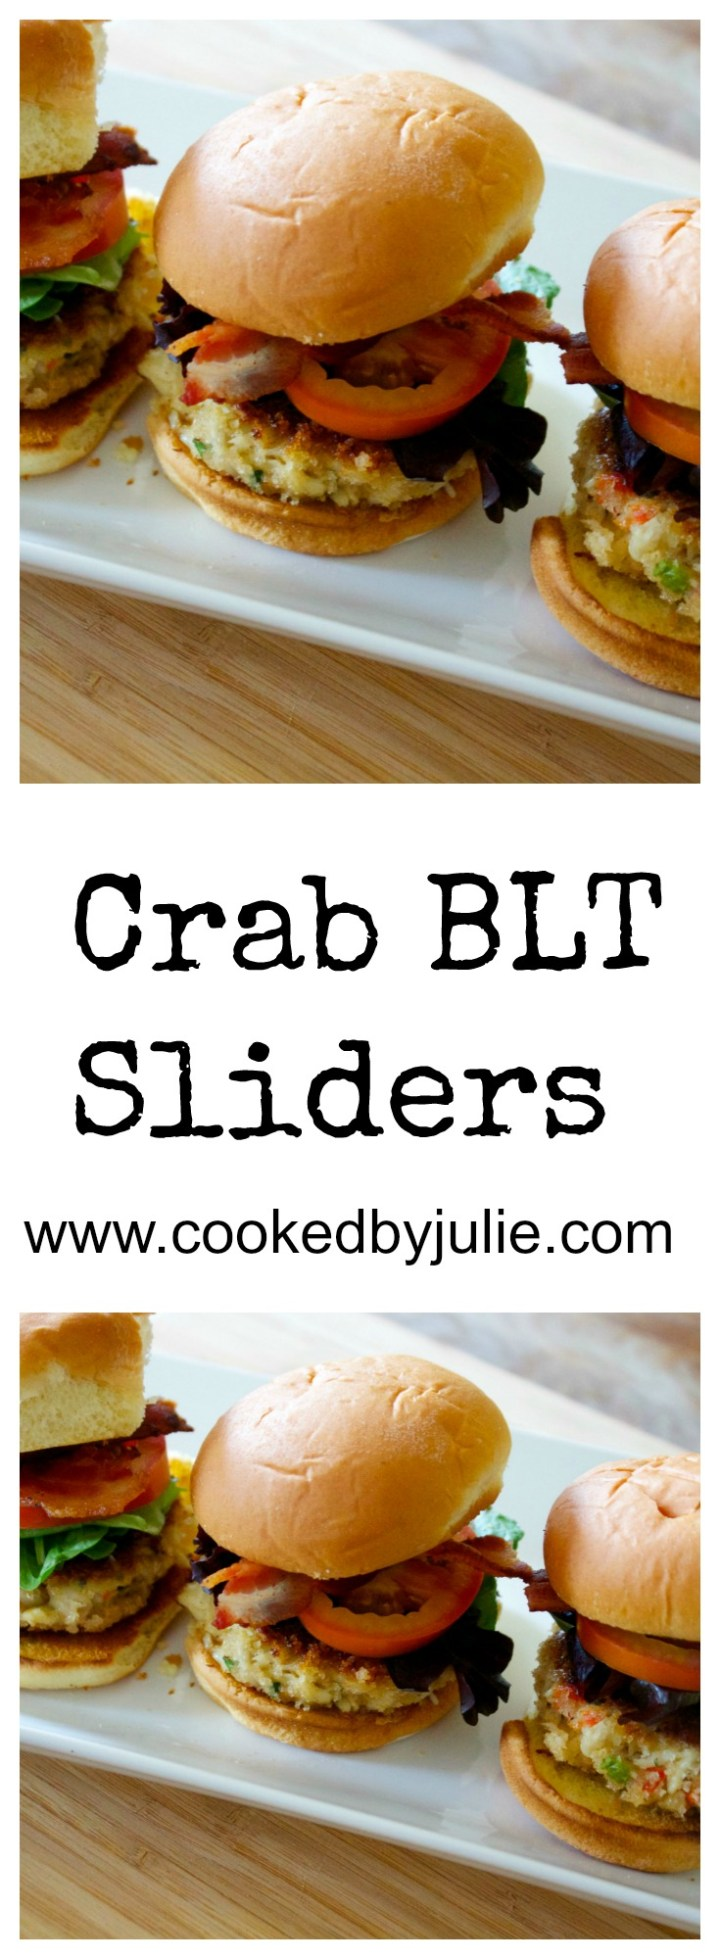 Homemade Crab Cake BLT Sliders | Video and Recipe from Cooked By Julie